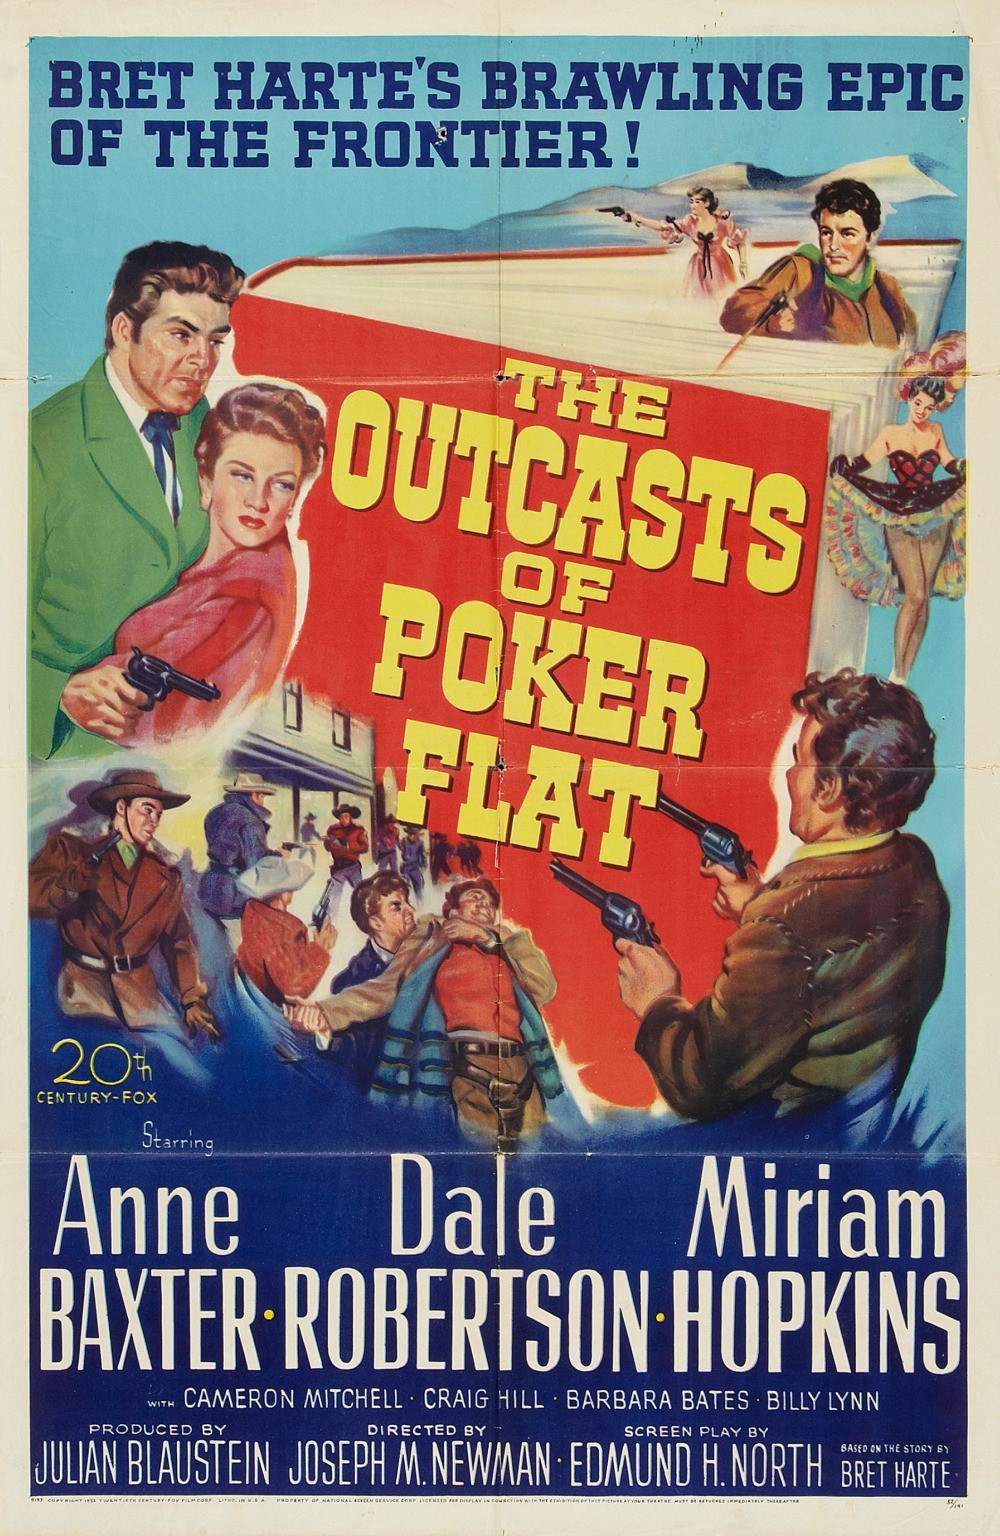 the outcasts of poker flat Find great deals on ebay for the outcasts of poker flat and alfred hitchcocks shop with confidence.